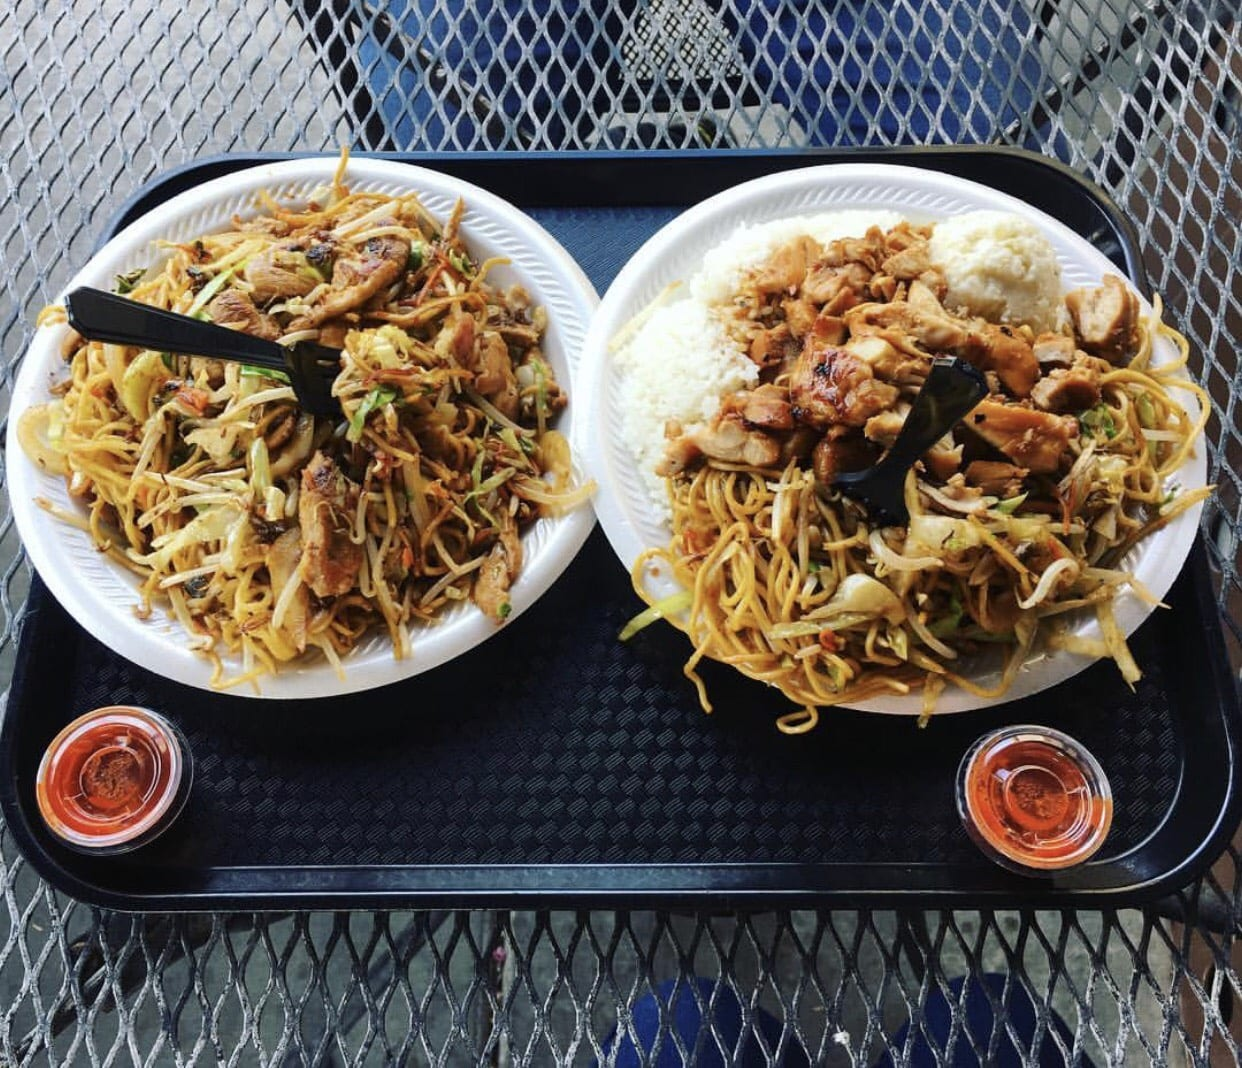 This is a close up of stir fry noodles from Ikkyu.